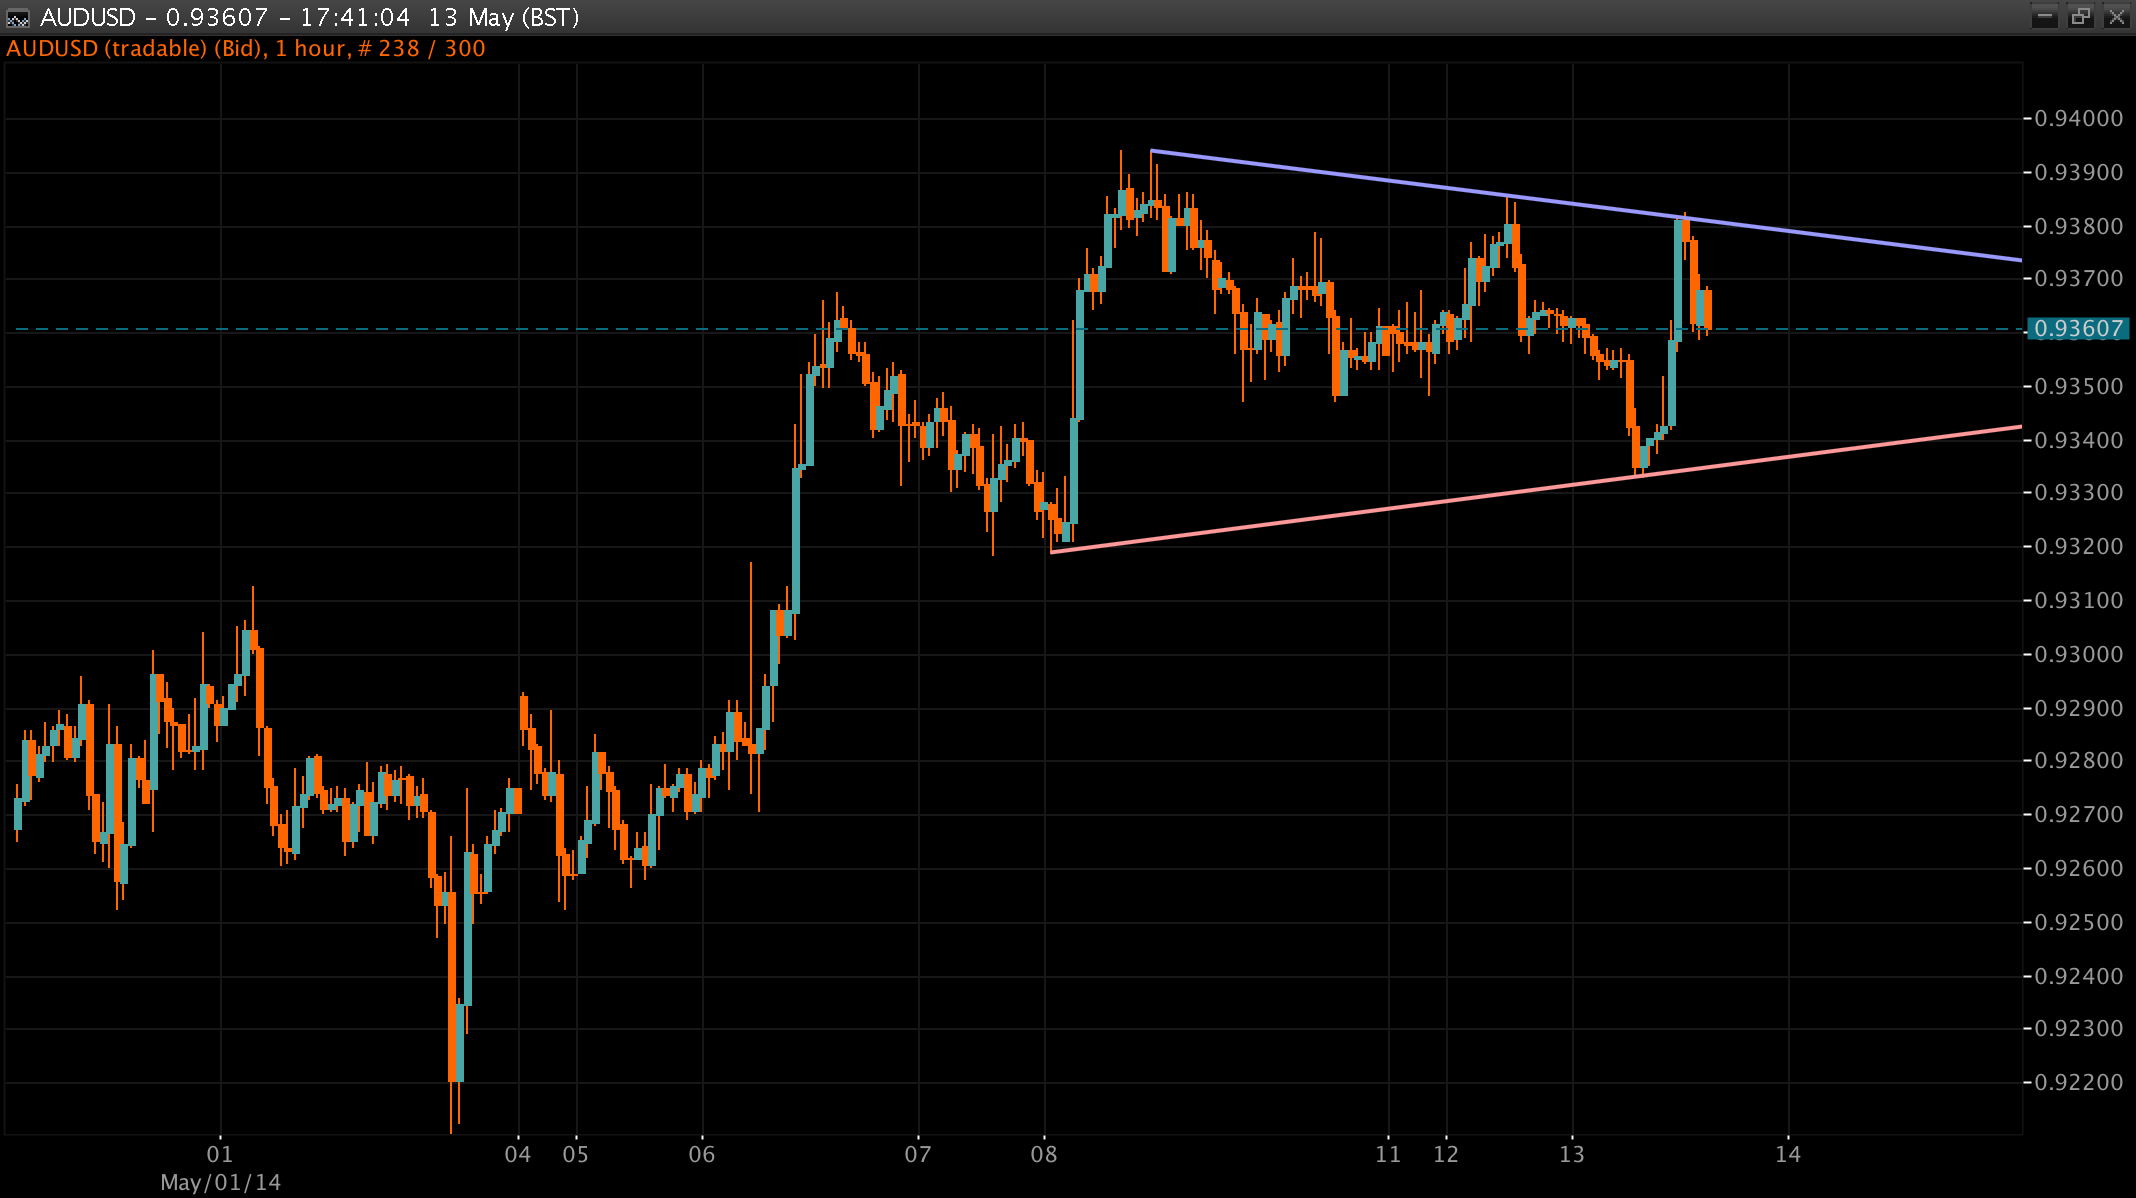 AUD/USD Chart 13 May 2014